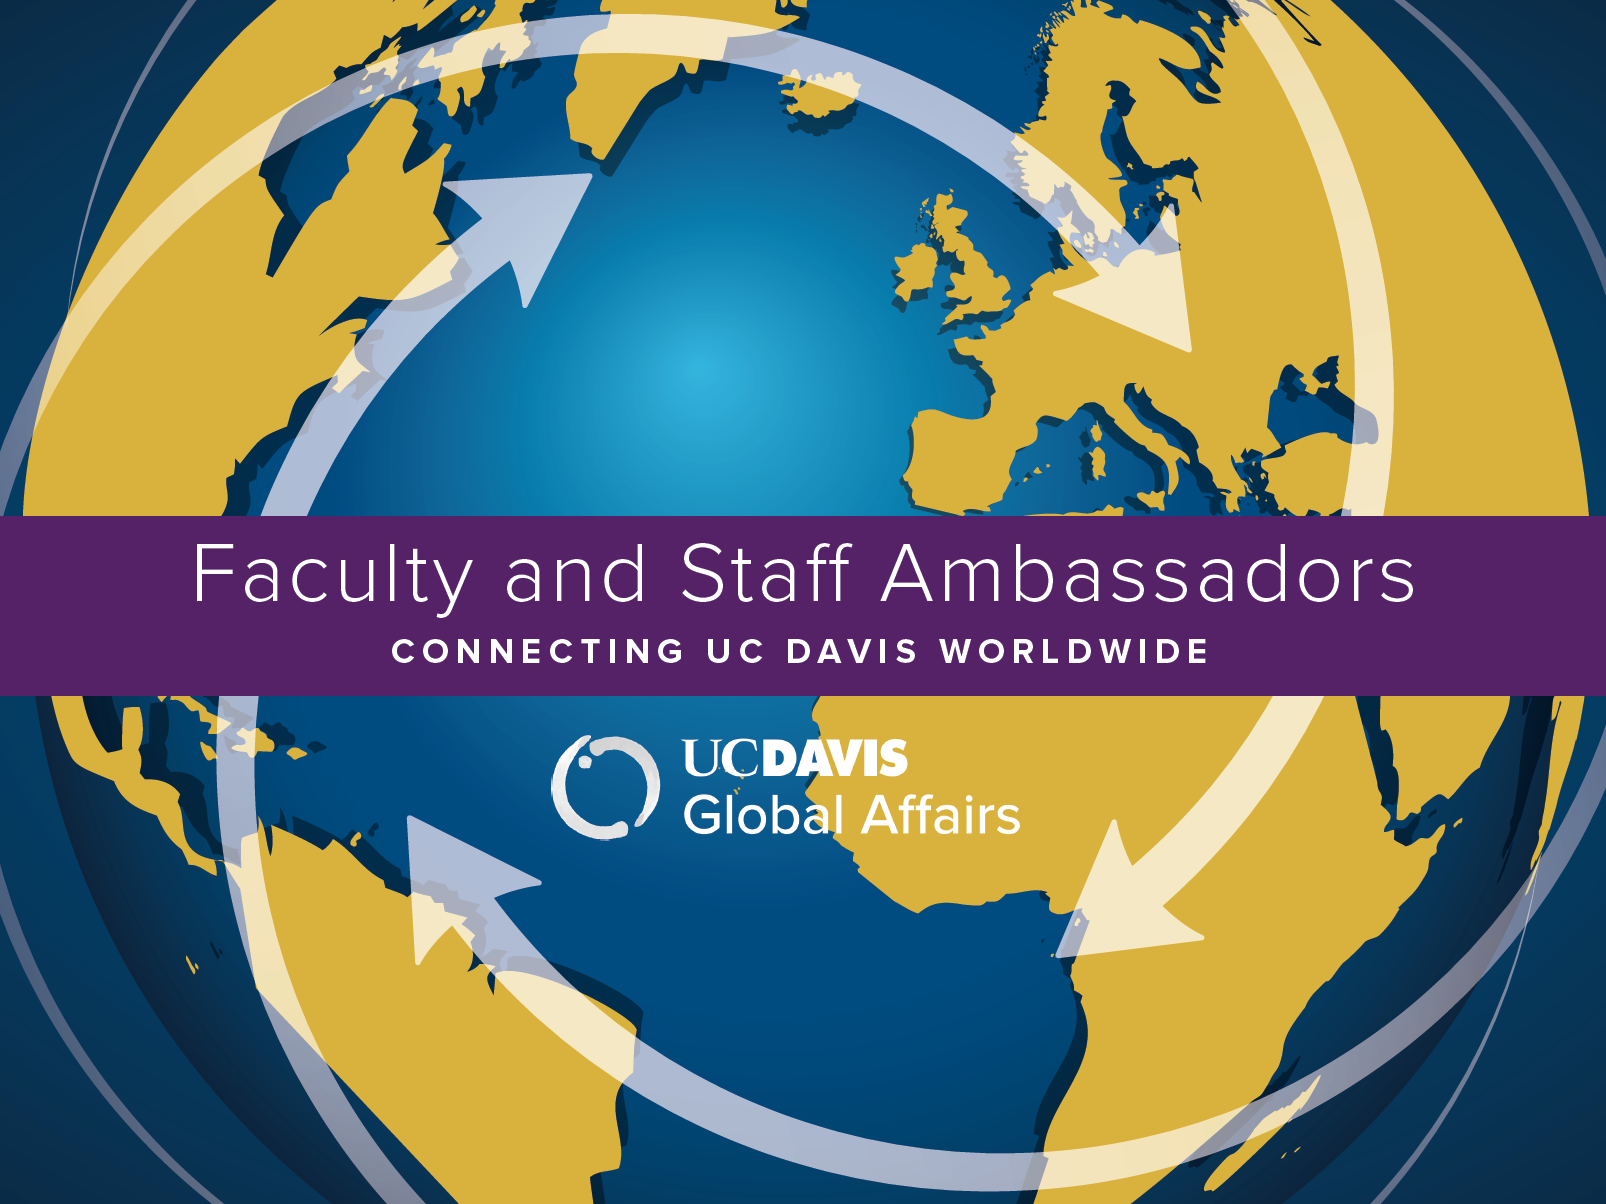 faculty and staff ambassadors - connecting UC Davis worldwide